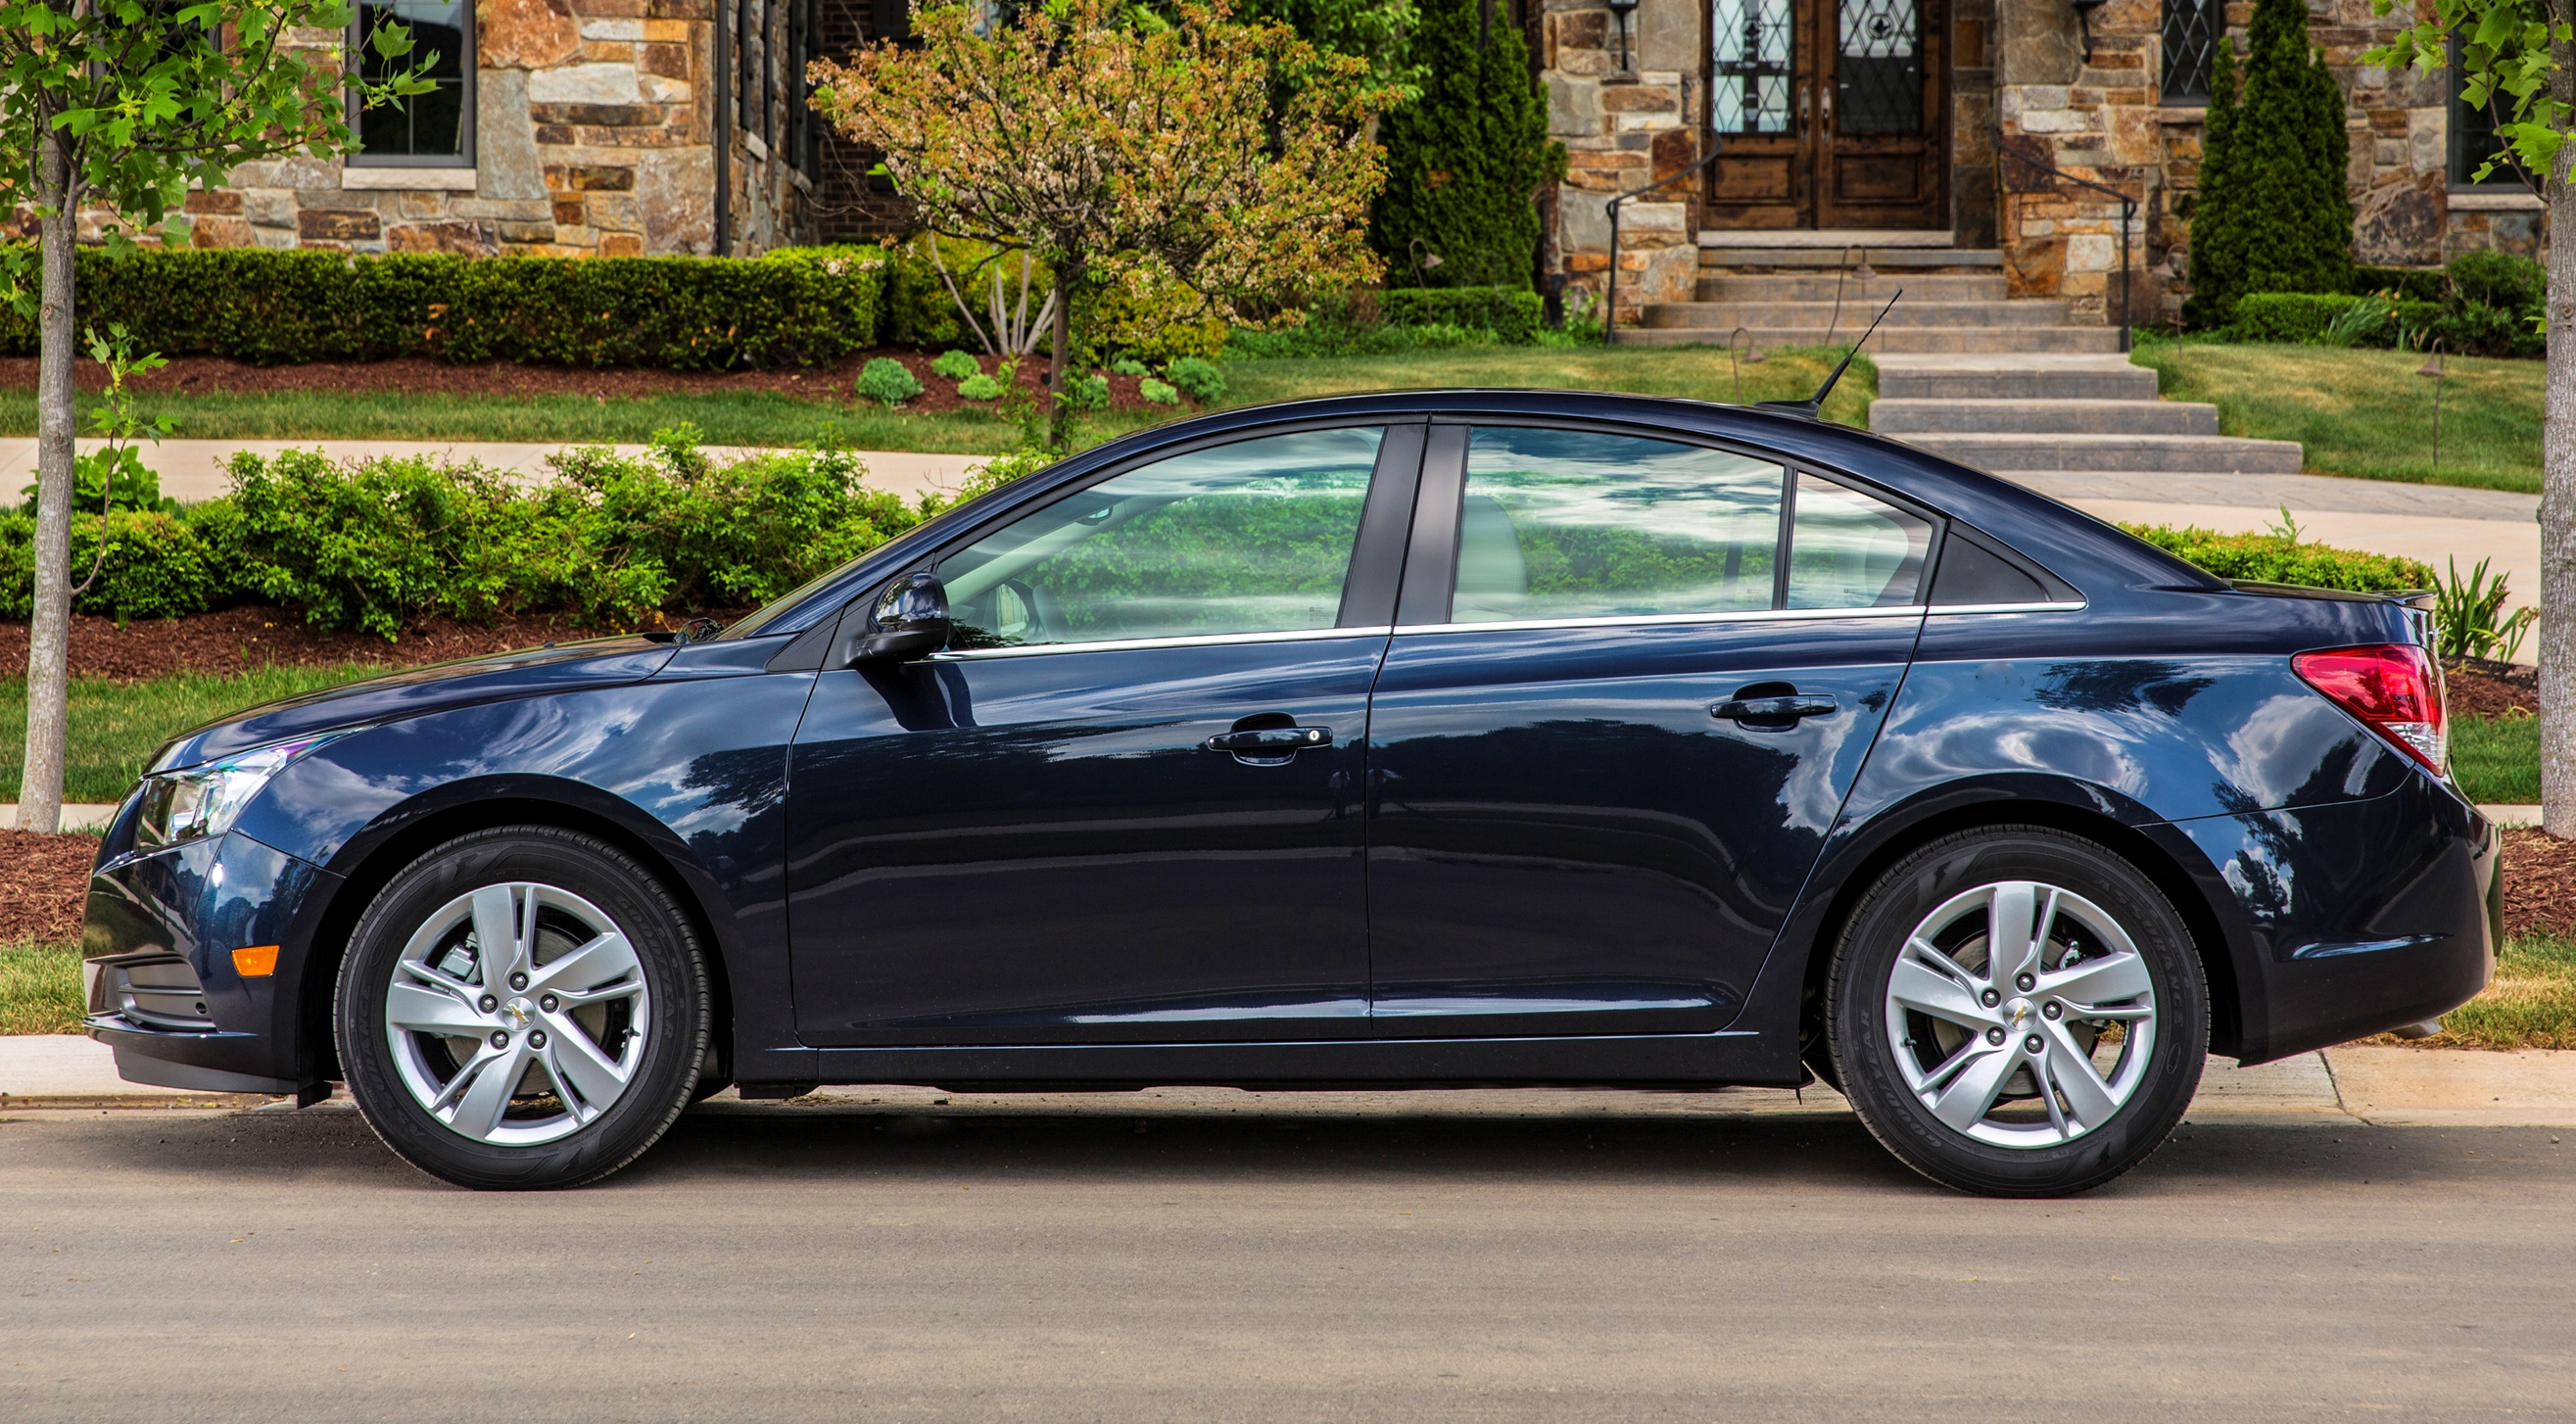 Chevrolet Cruze Repair Manual: Headlining Trim Panel Replacement (Without Sunroof)